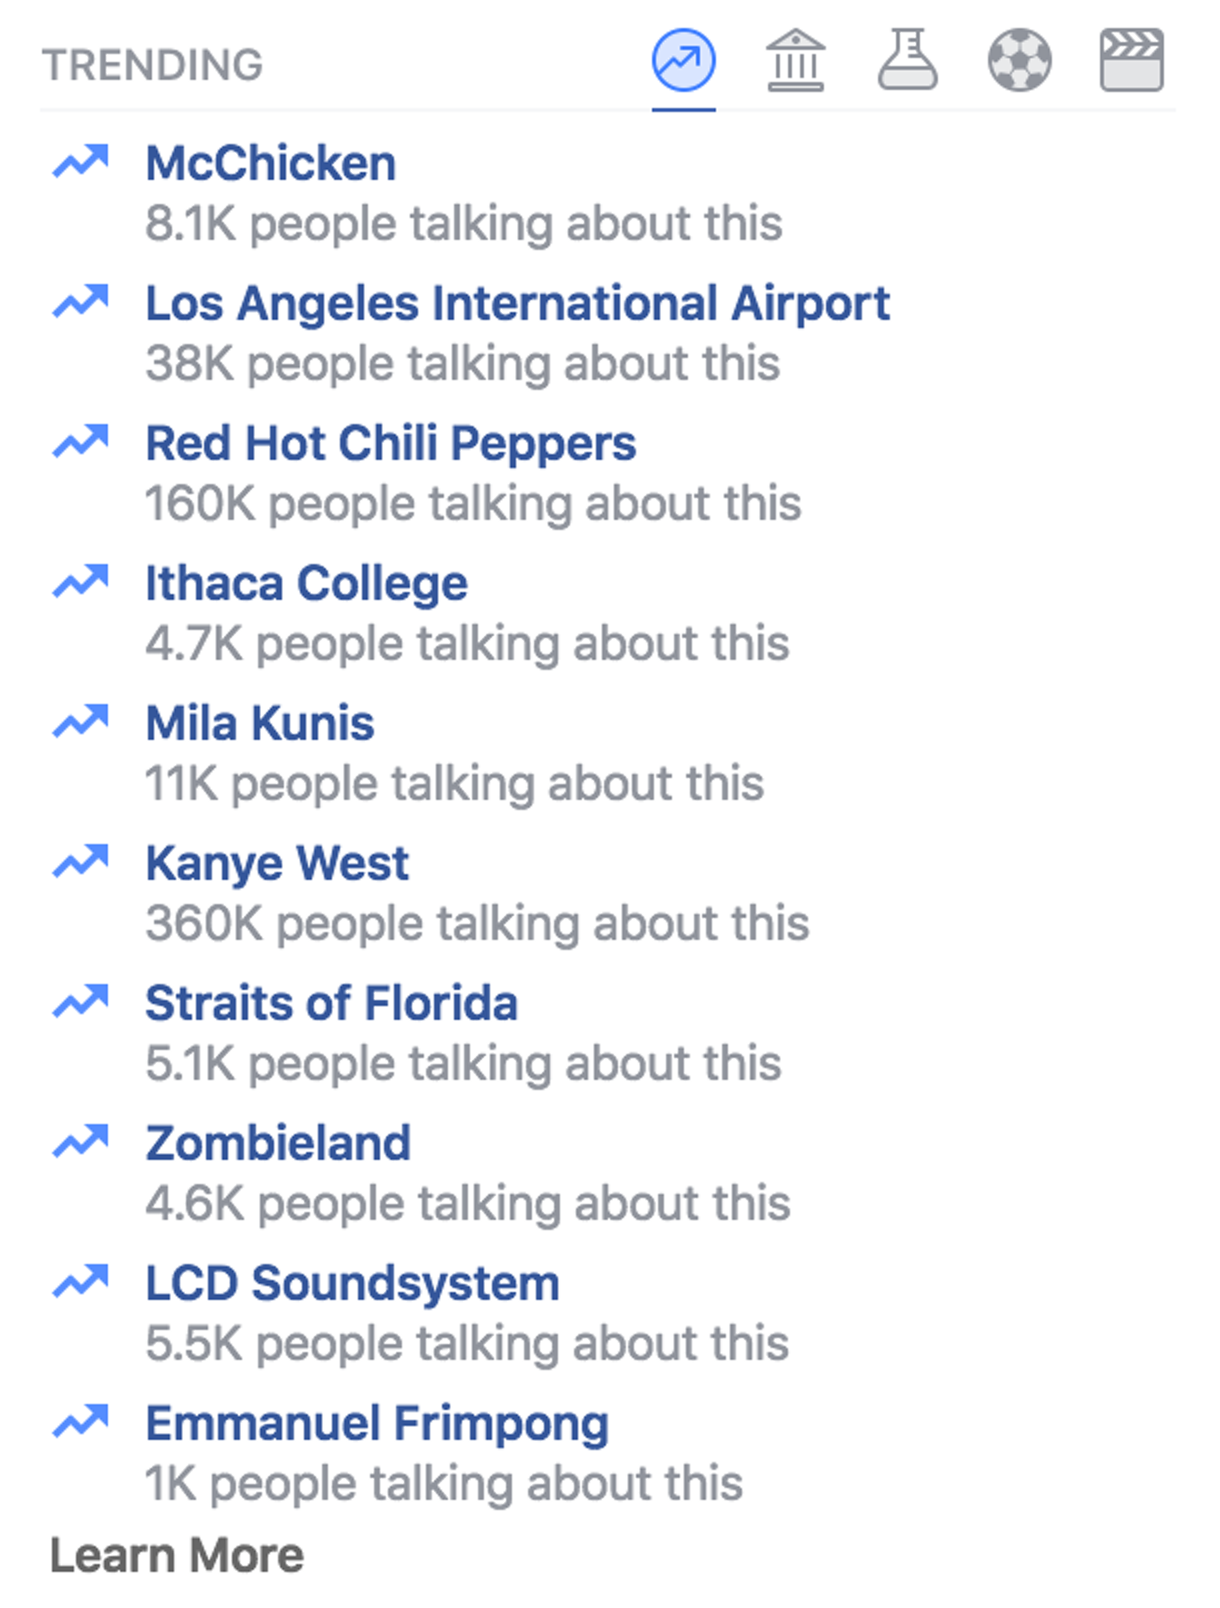 The new Facebook Trending look: Gone are the short descriptions.